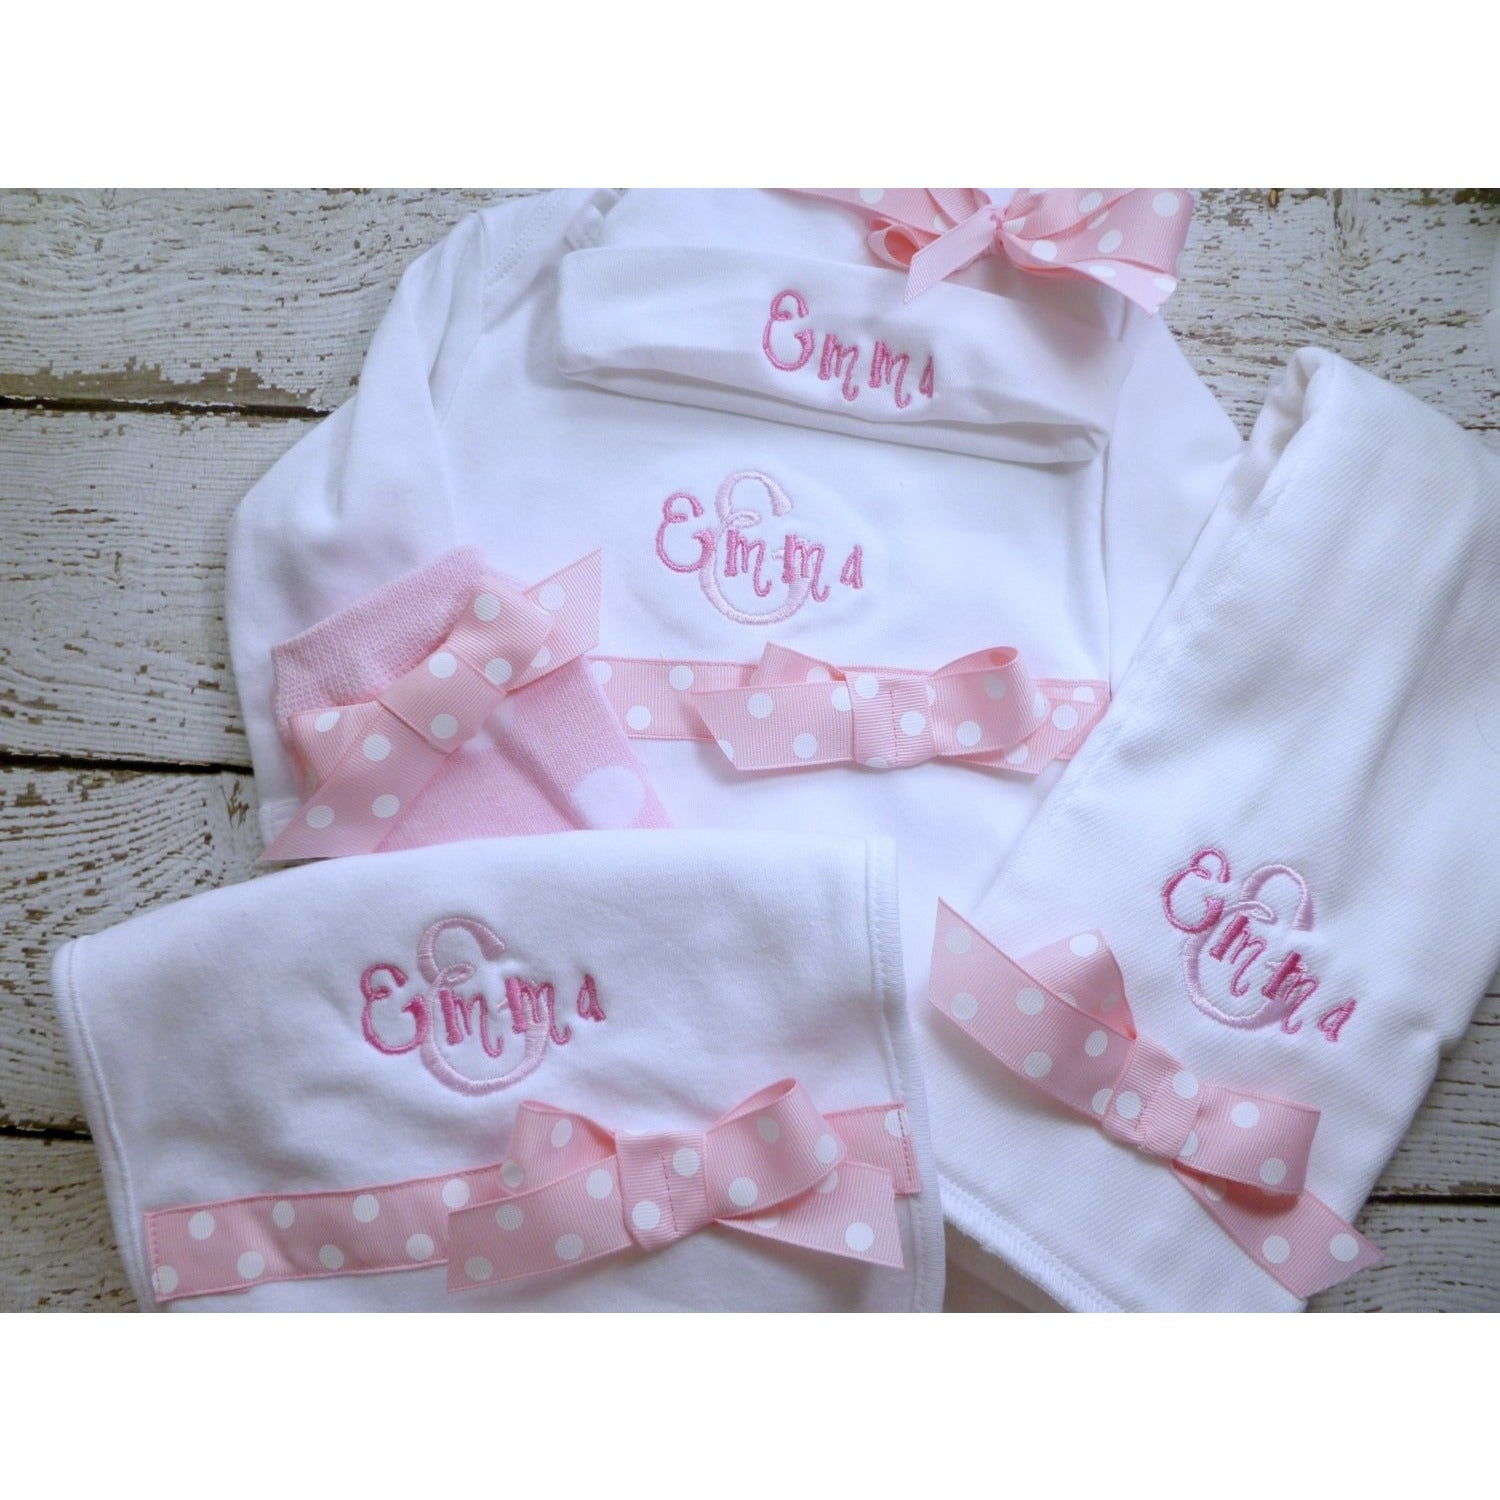 Personalized Baby Girls Coming Home Outfit - Jennifer Noel Designs